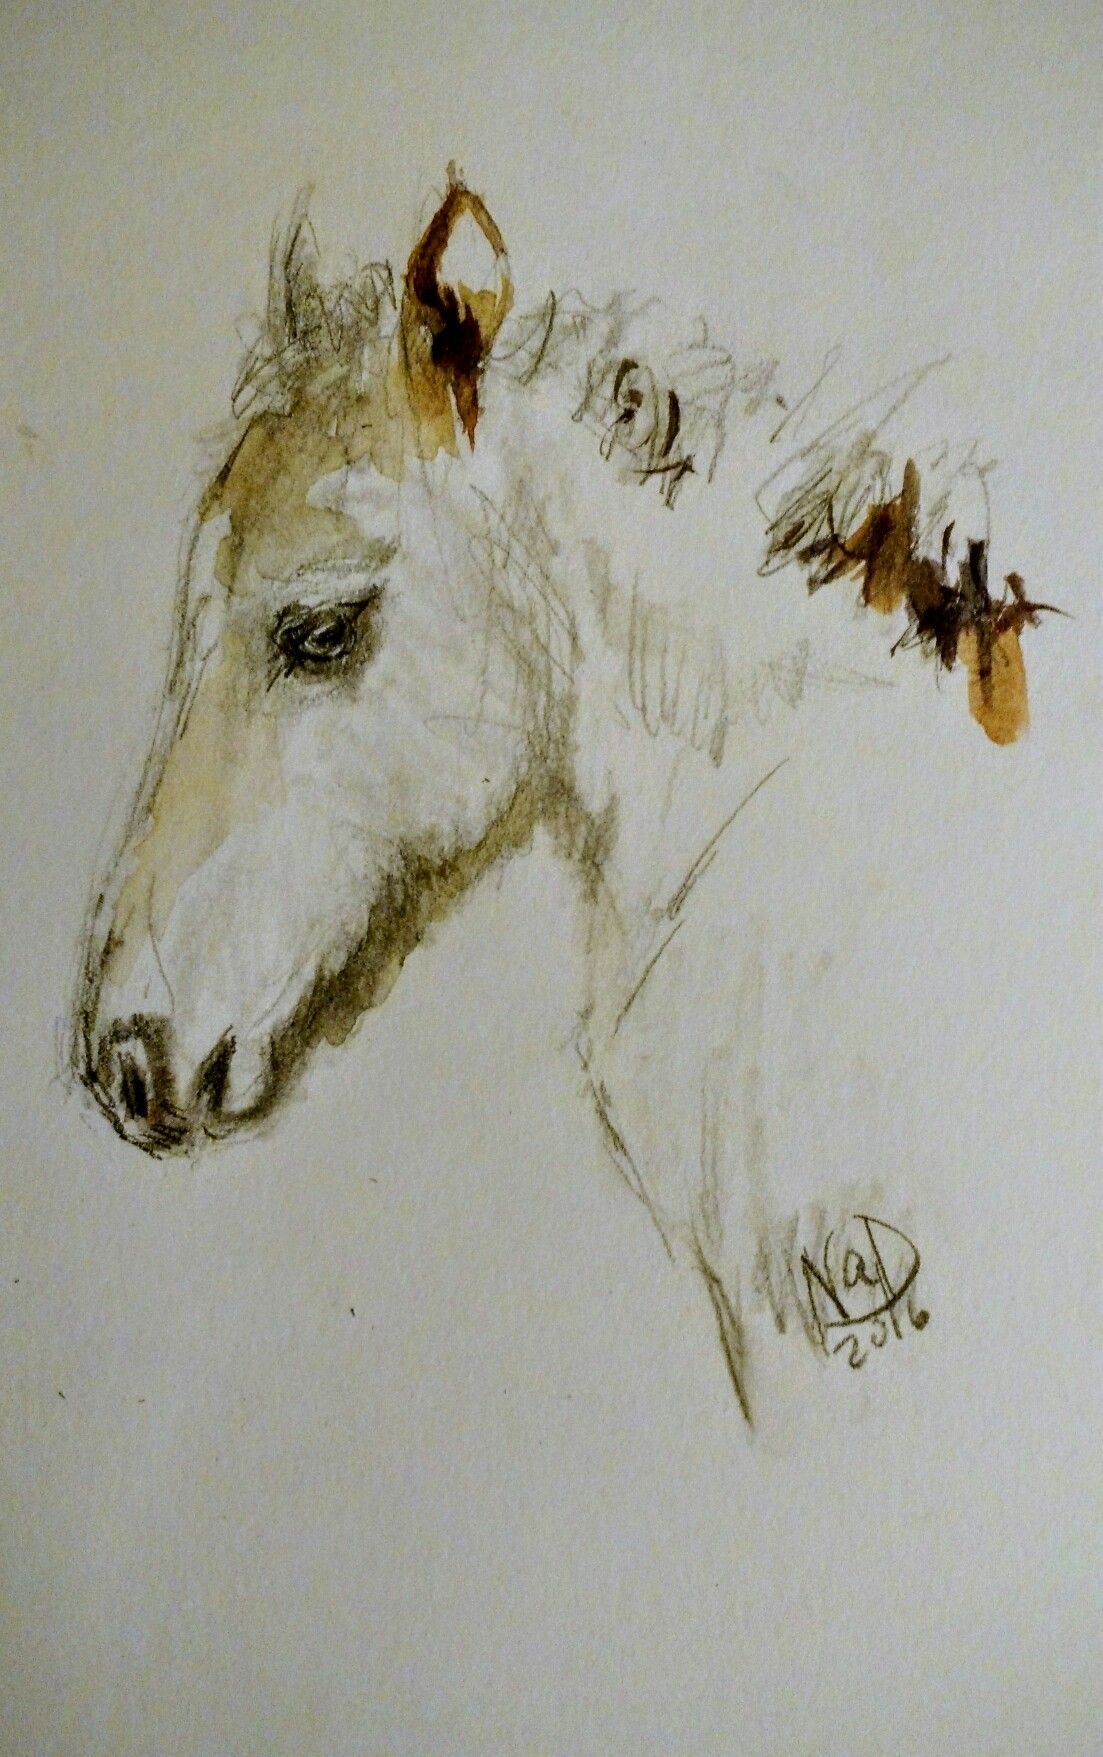 My sketch of an Icelandic horse foal in graphite and watercolor. #drawing #sketch #horseart #foal #icelandichorse #waysideartist